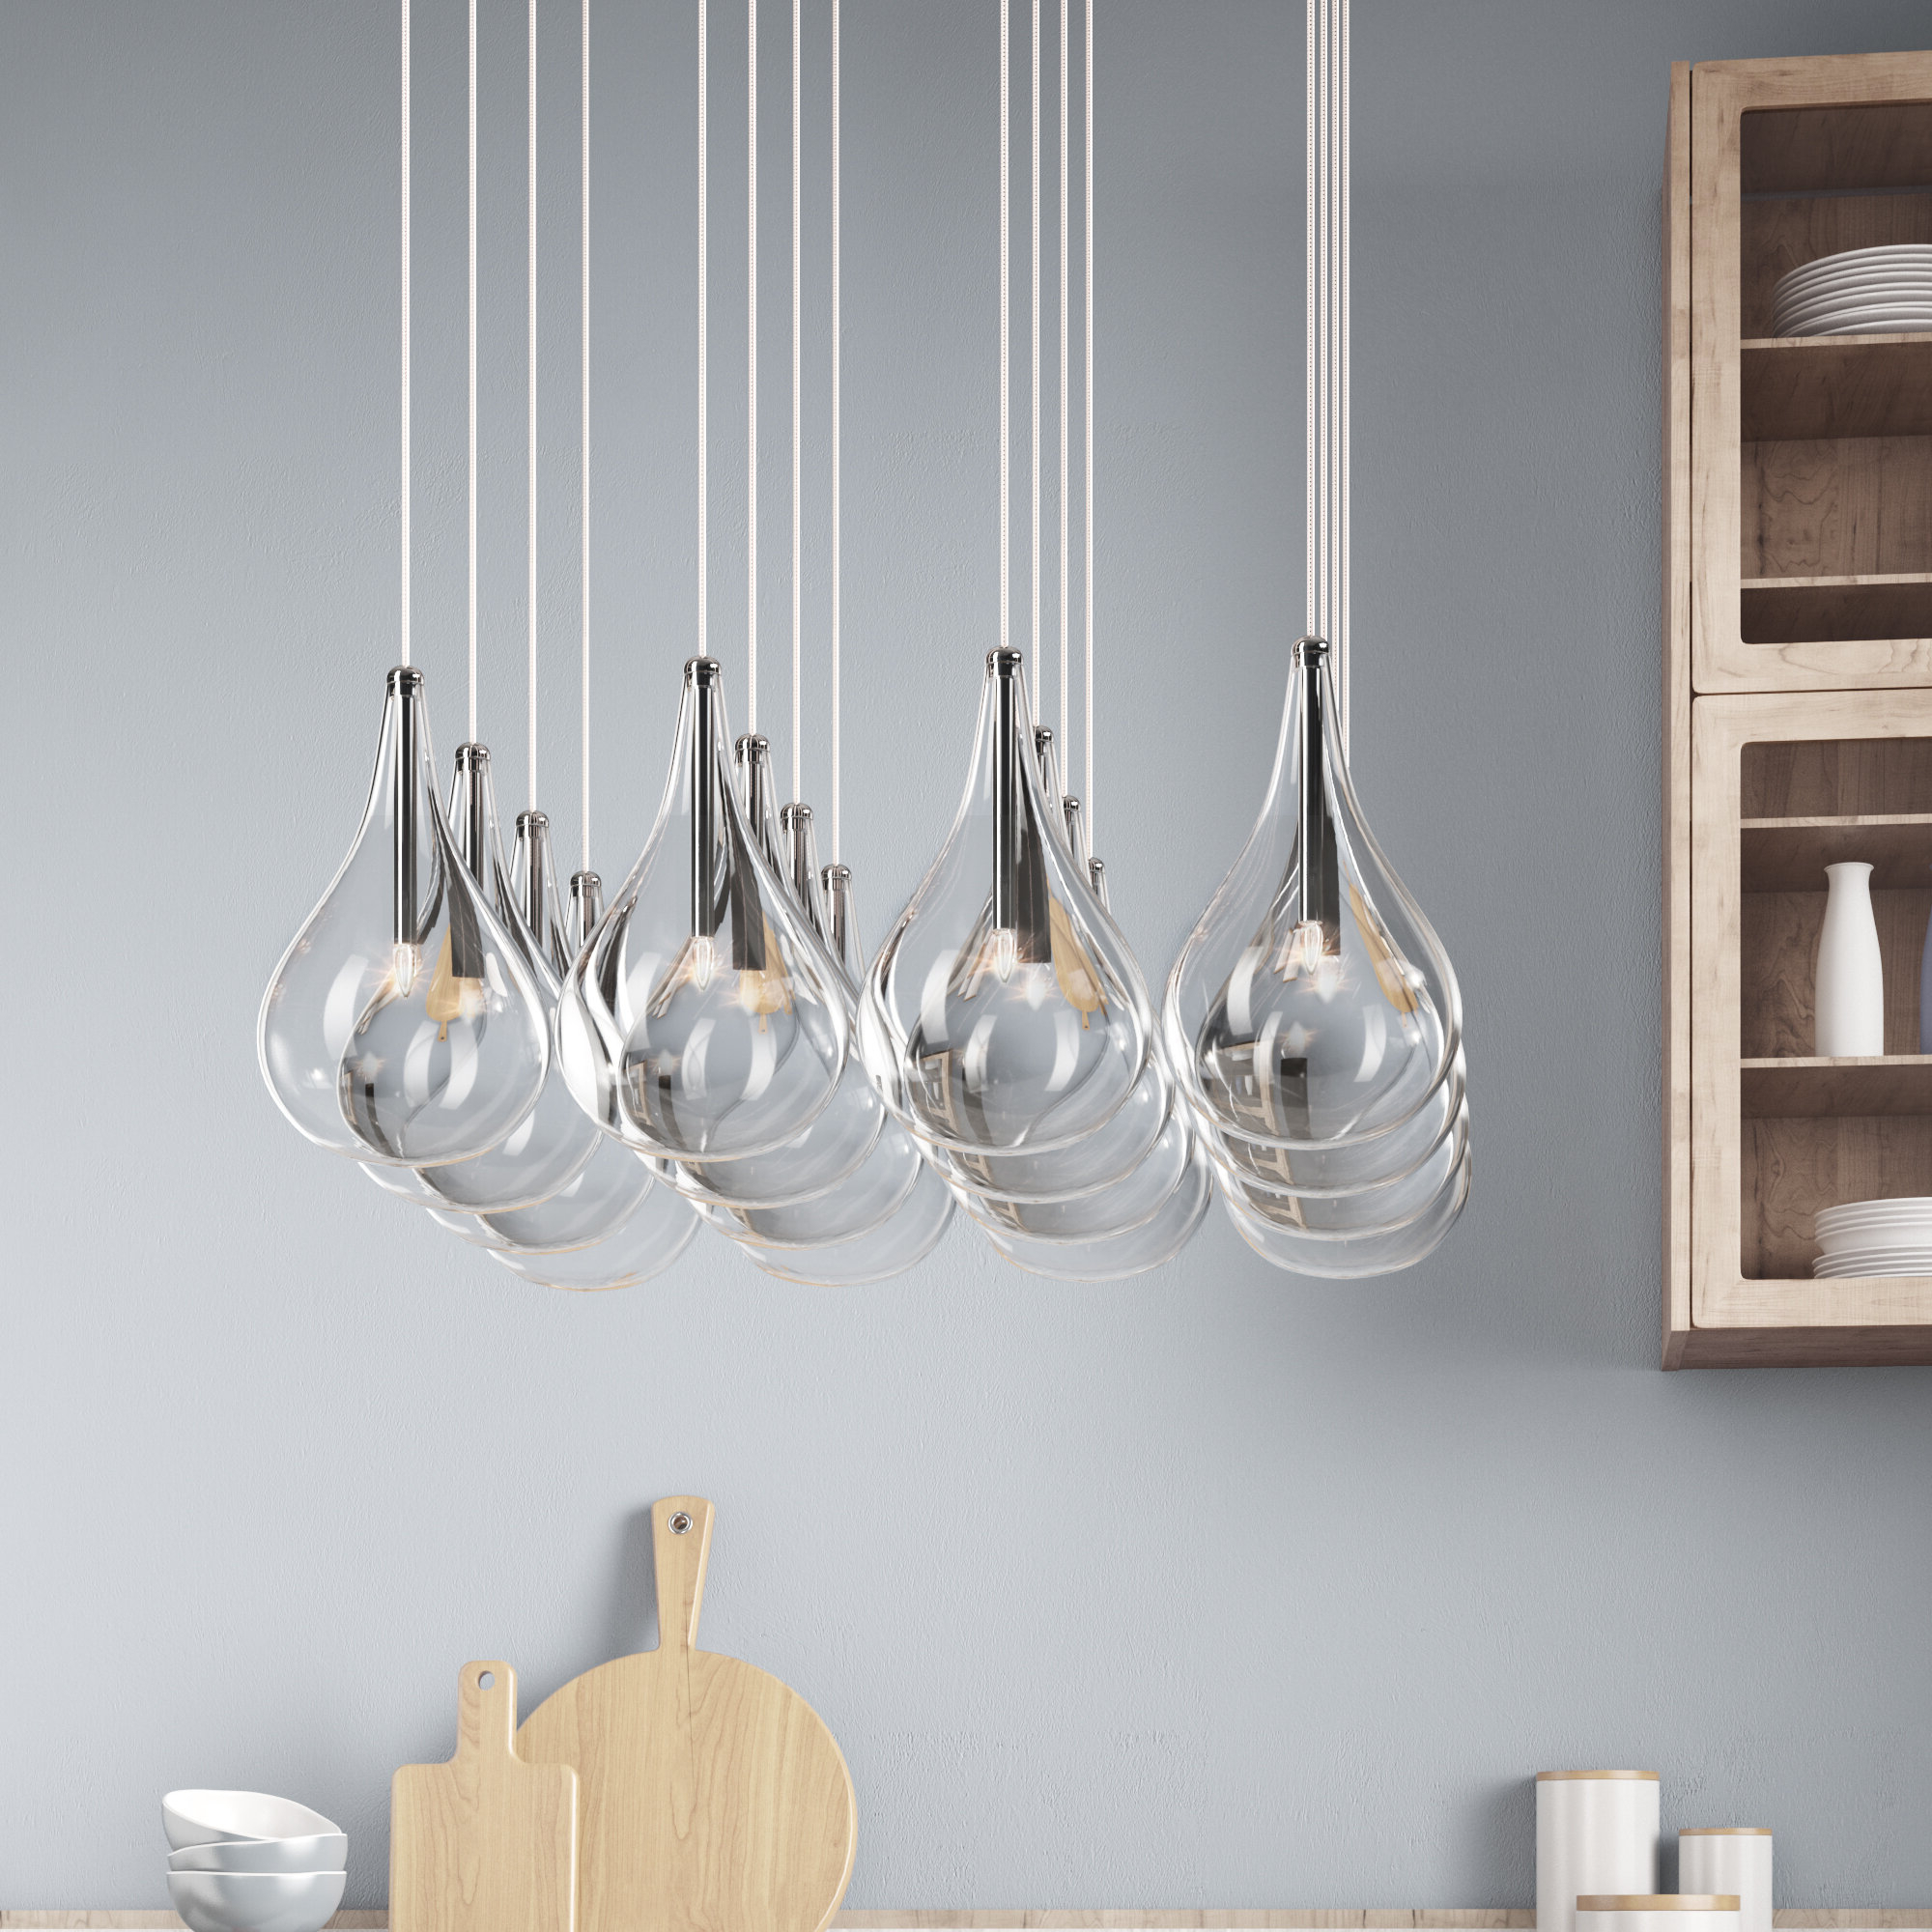 The 20 Best Collection Of Neal 5 Light Kitchen Island Teardrop Pendants